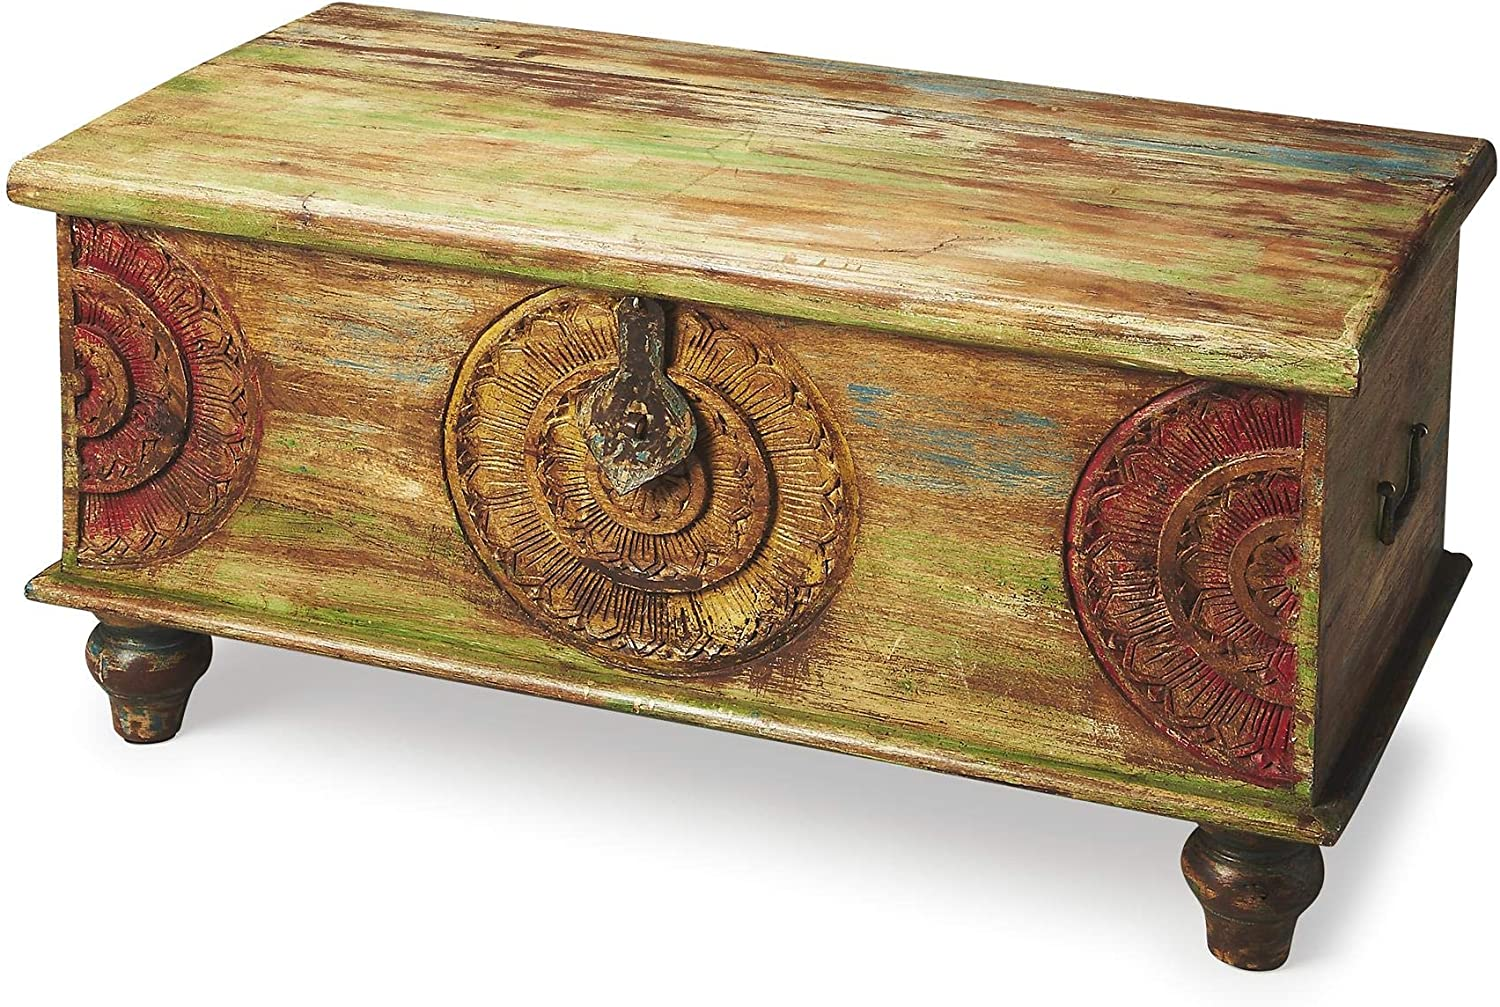 - Amazon.com: BUTLER MESA CARVED WOOD TRUNK COFFEE TABLE: Kitchen